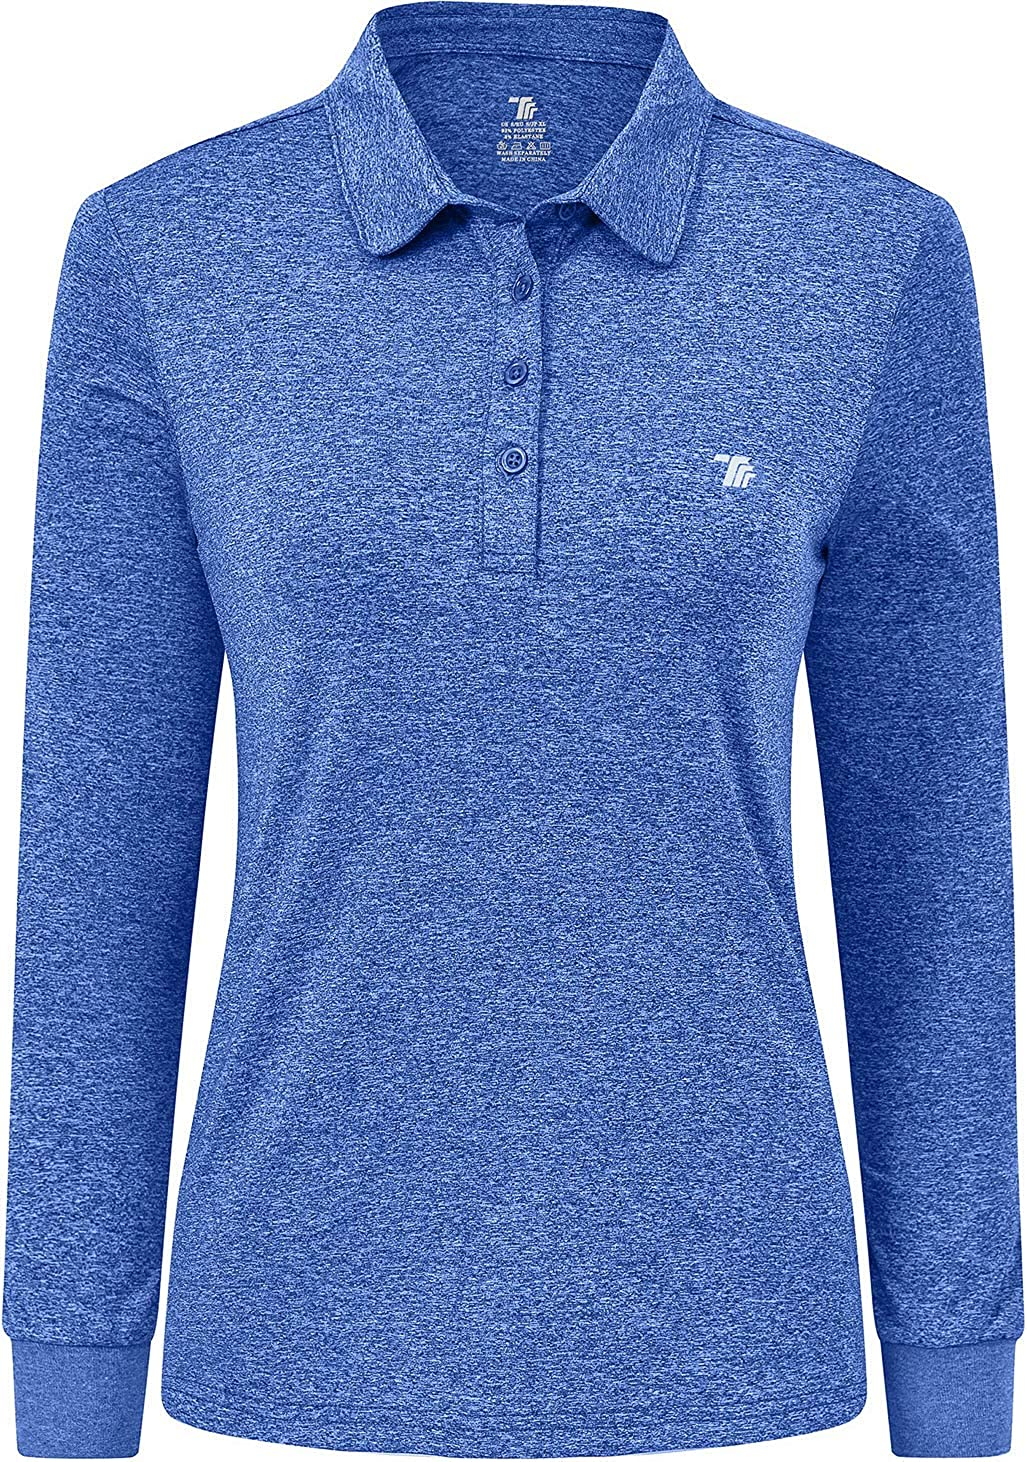 Women's Golf Polo Shirts Long Fit Sleeve trend rank Slim Athletic Manufacturer regenerated product Co